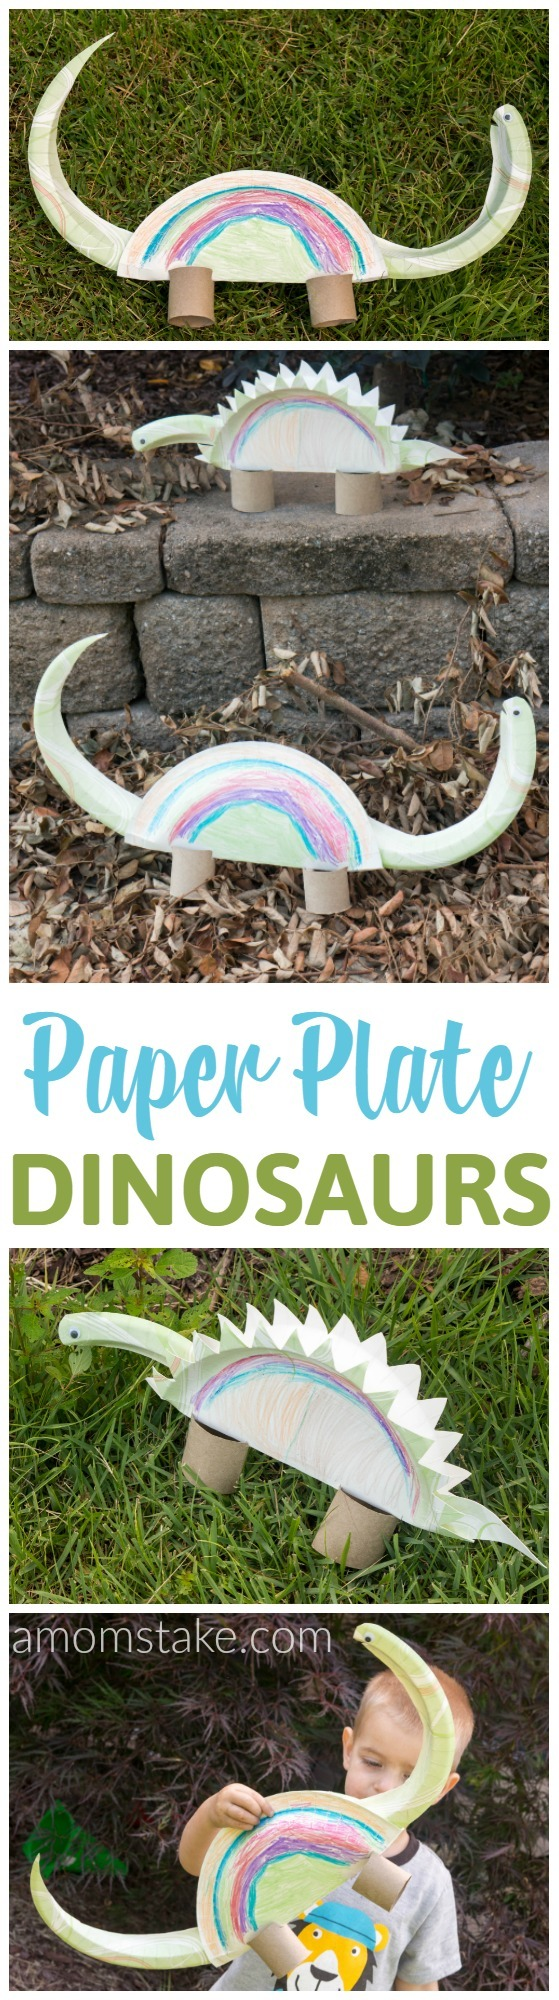 Paper plate crafts are so much fun and cheap! We made paper plate dinosaur & Easy Paper Plate Dinosaur Craft Tutorial - A Mom\u0027s Take